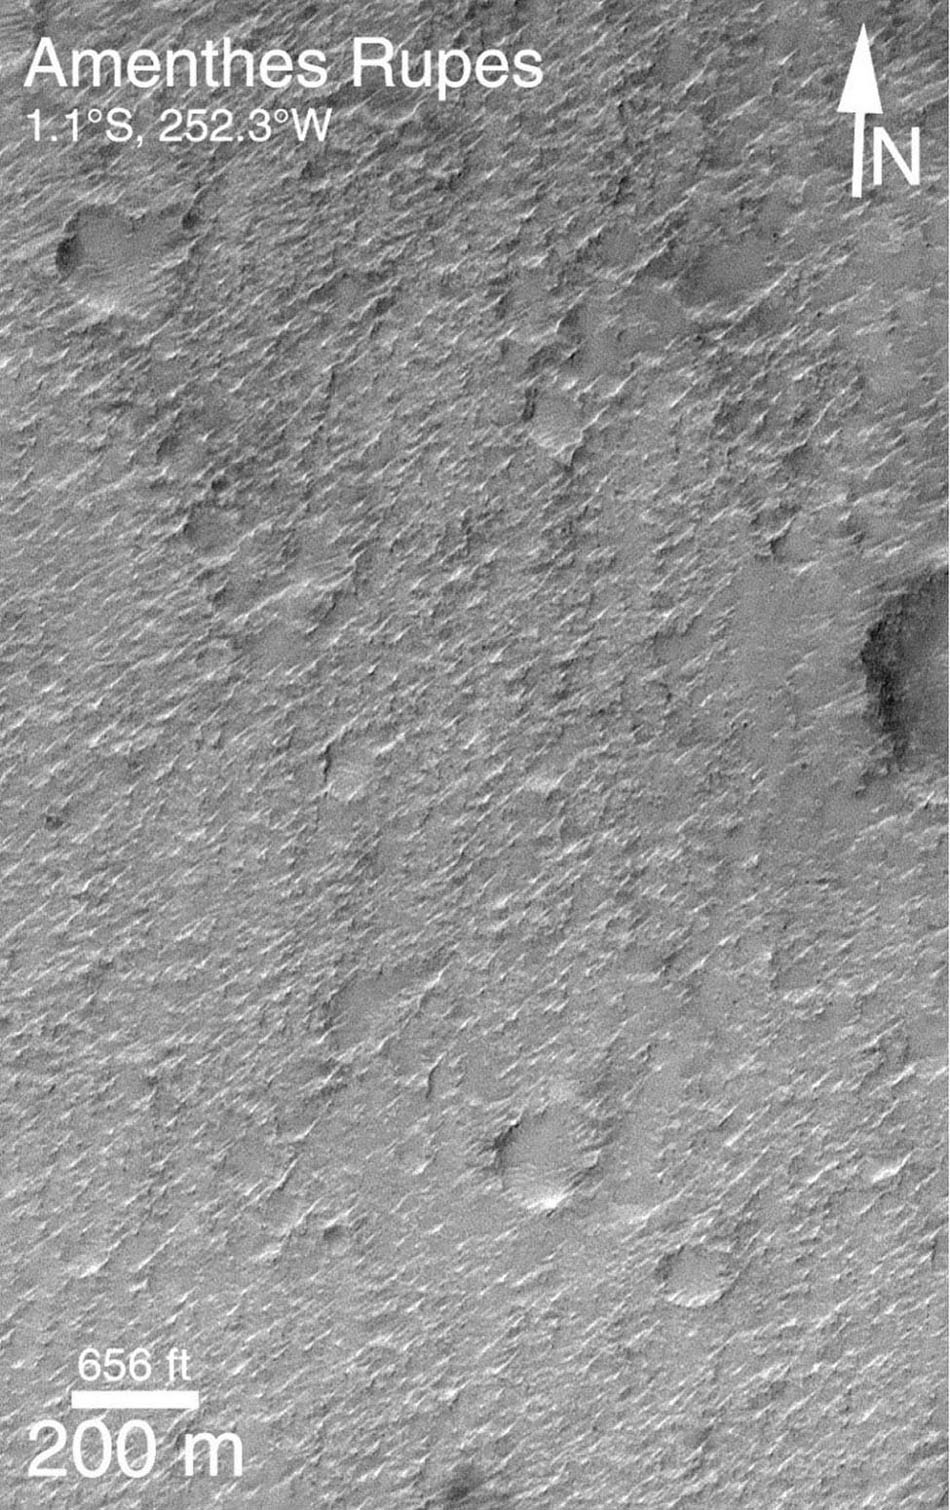 NASA's Mars Global Surveyor shows an area on Mars that appears to be smooth, with rough texture probably cause by wind erosion.